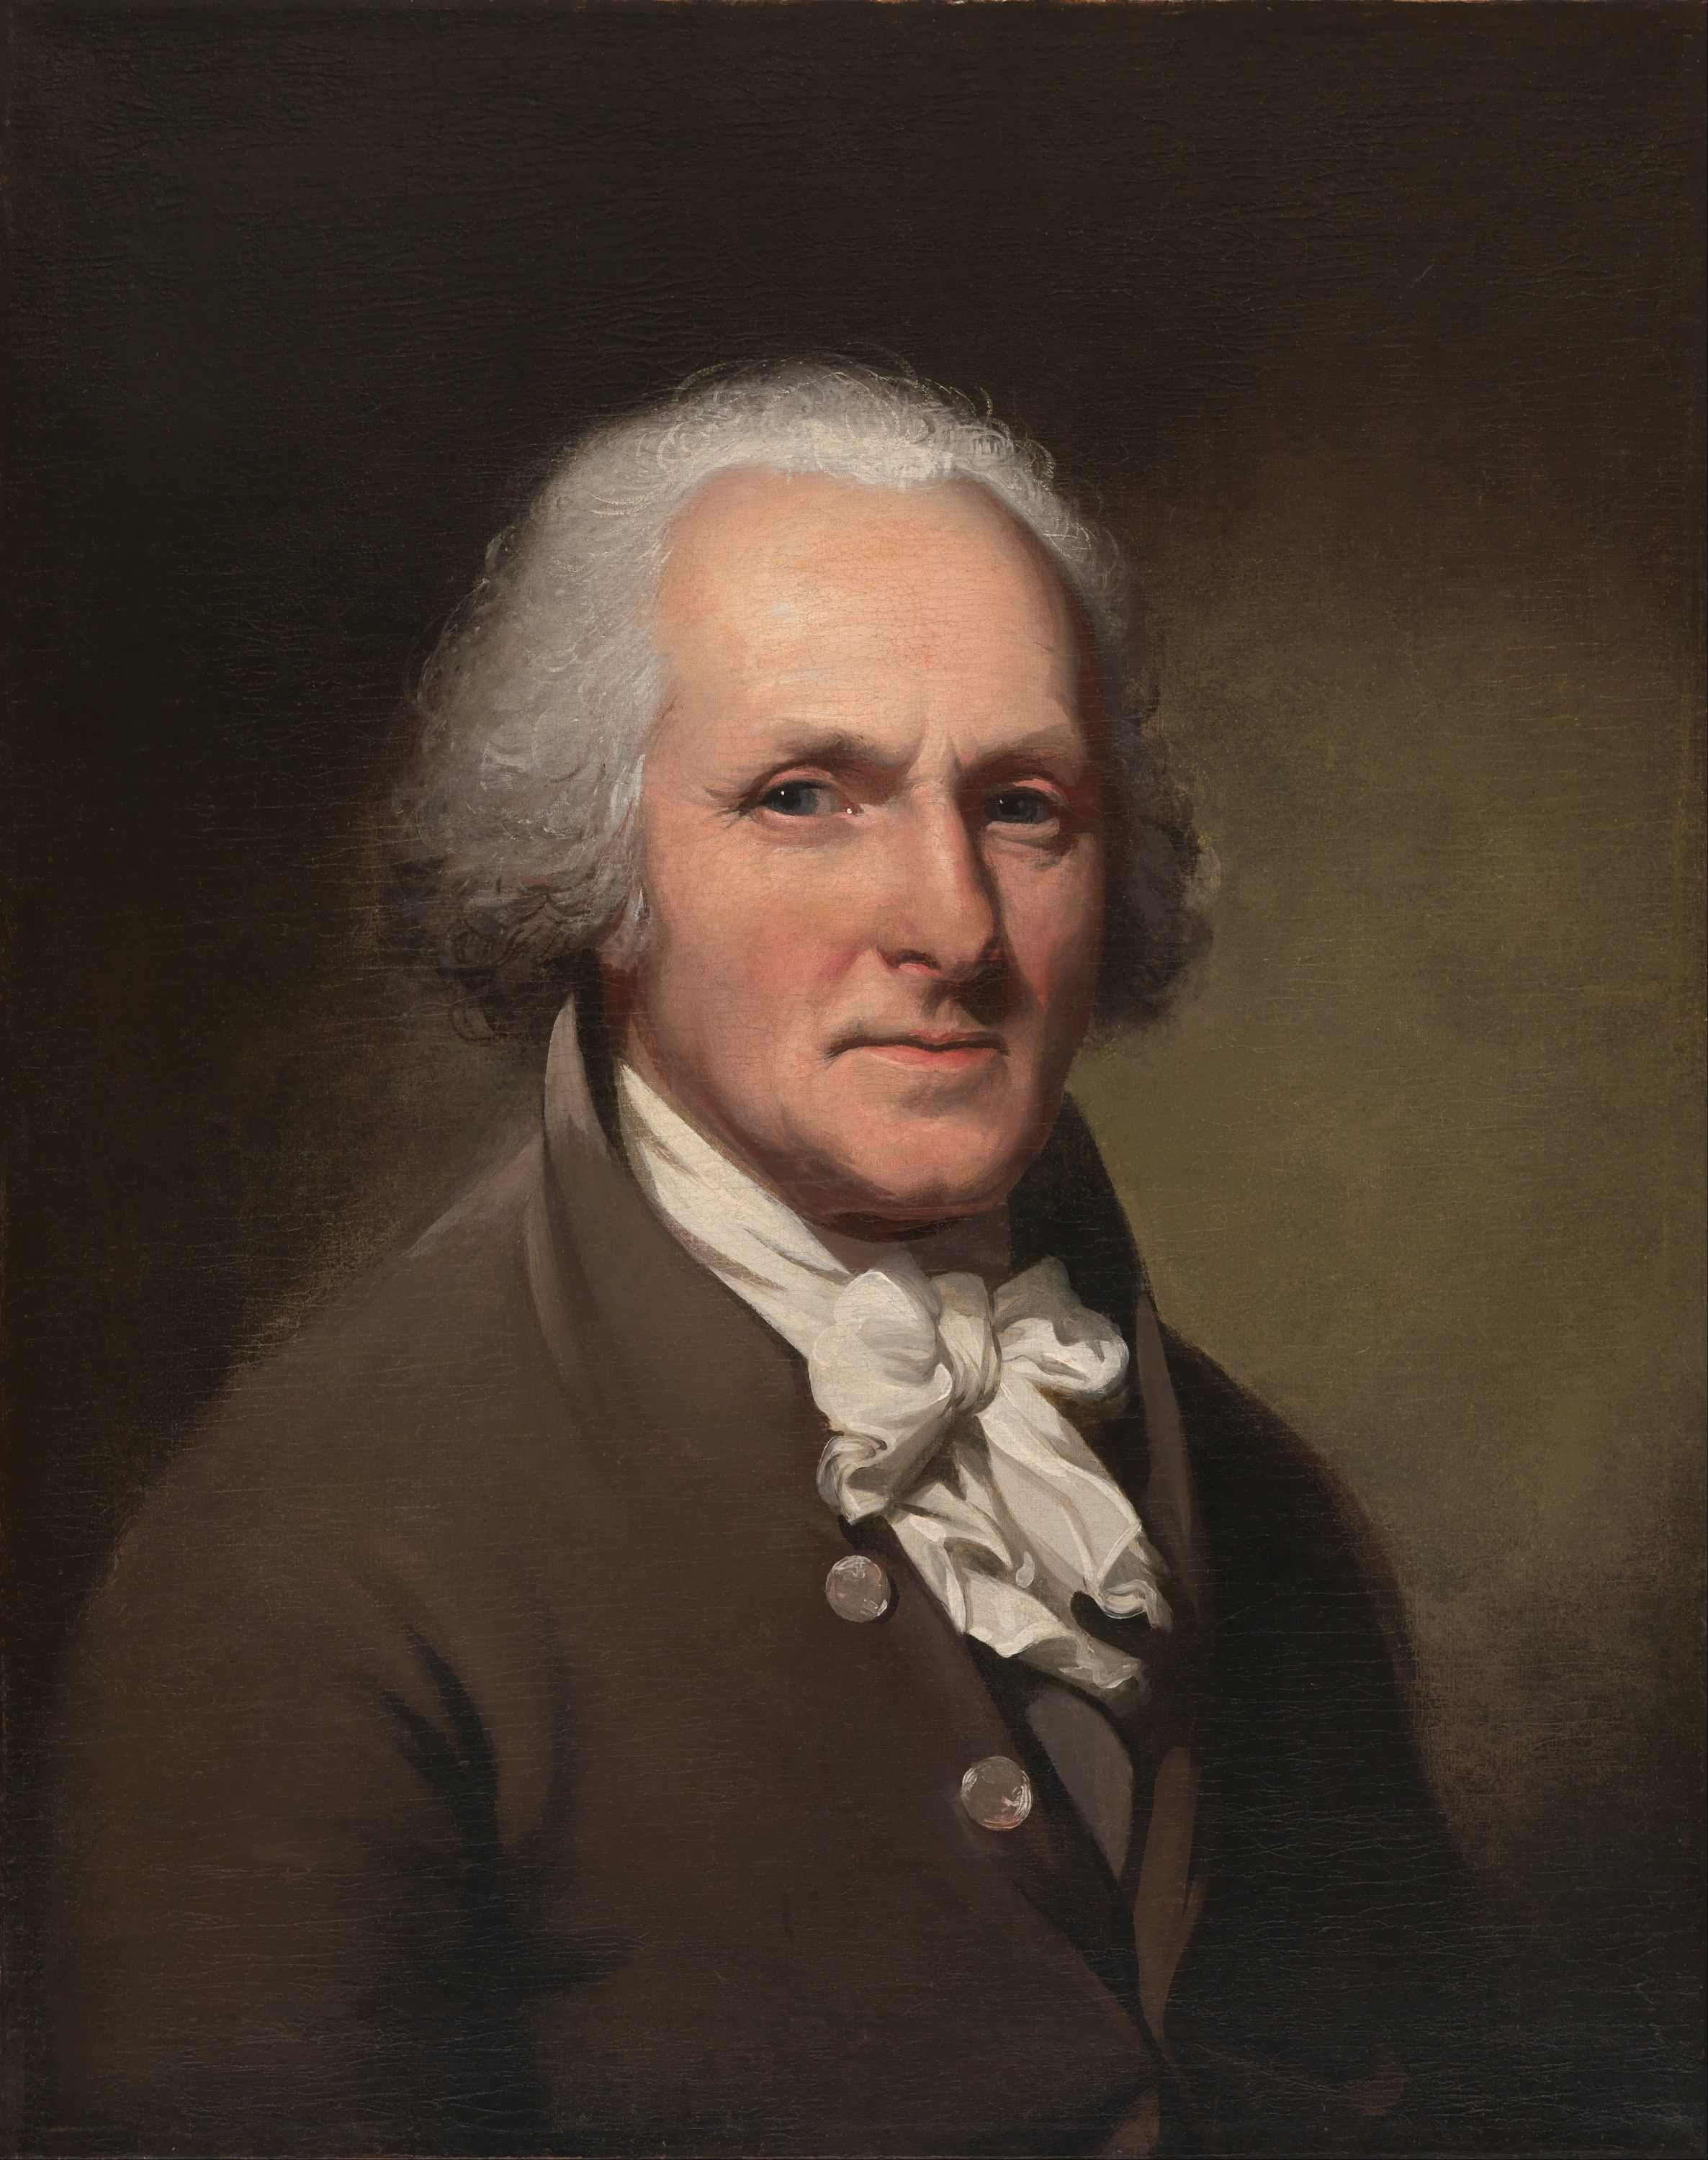 Charles Willson Peale, self portrait c. 1791. Courtesy of the National Portrait Gallery.